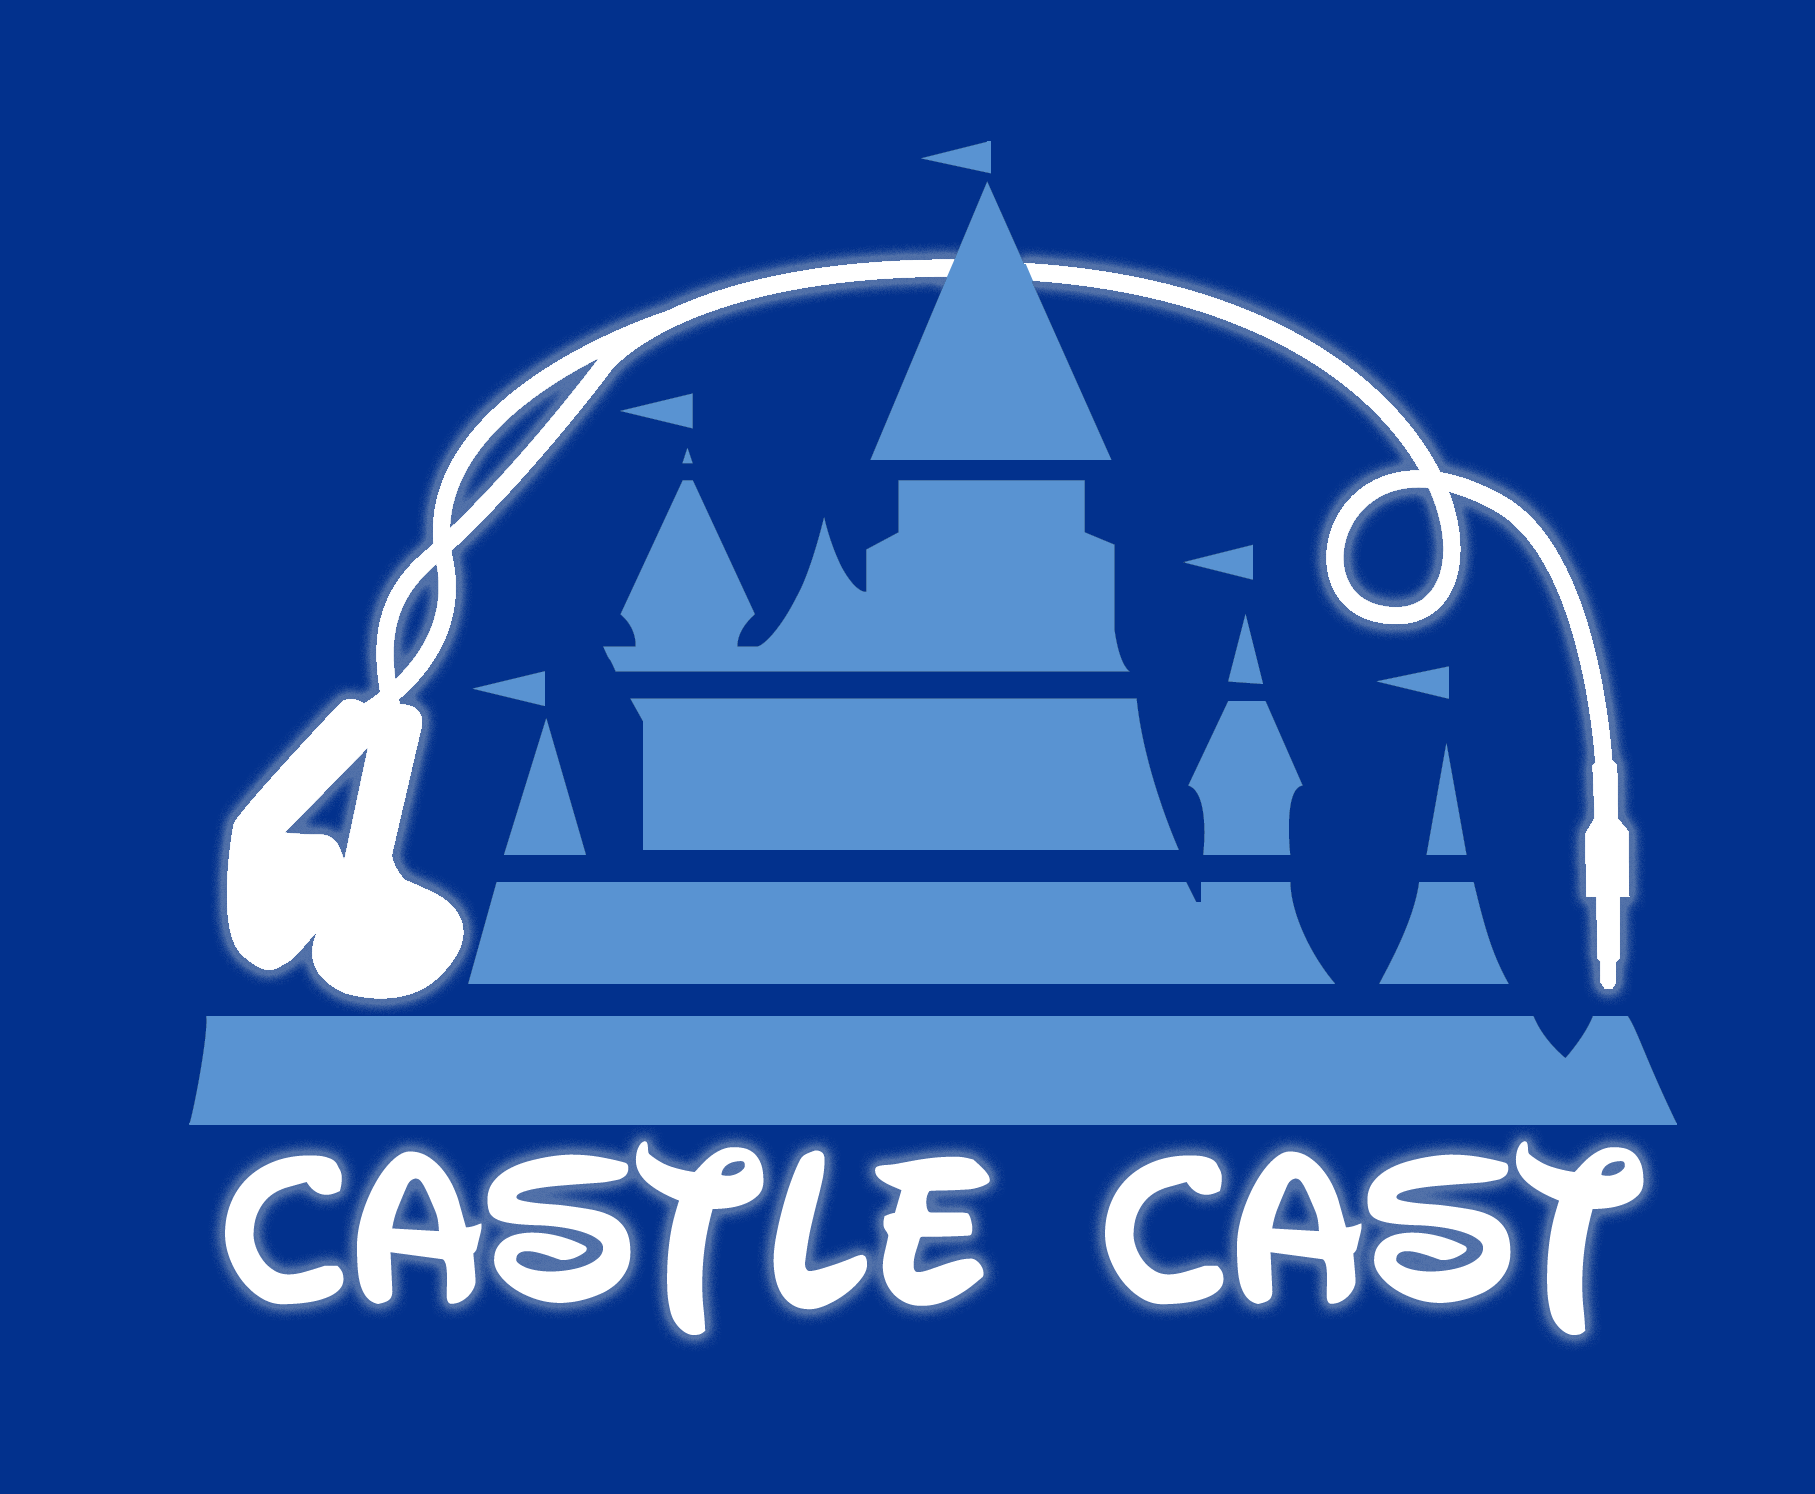 "Castle Cast Episode 1 ""Over/Under A Walk Through Disney"""